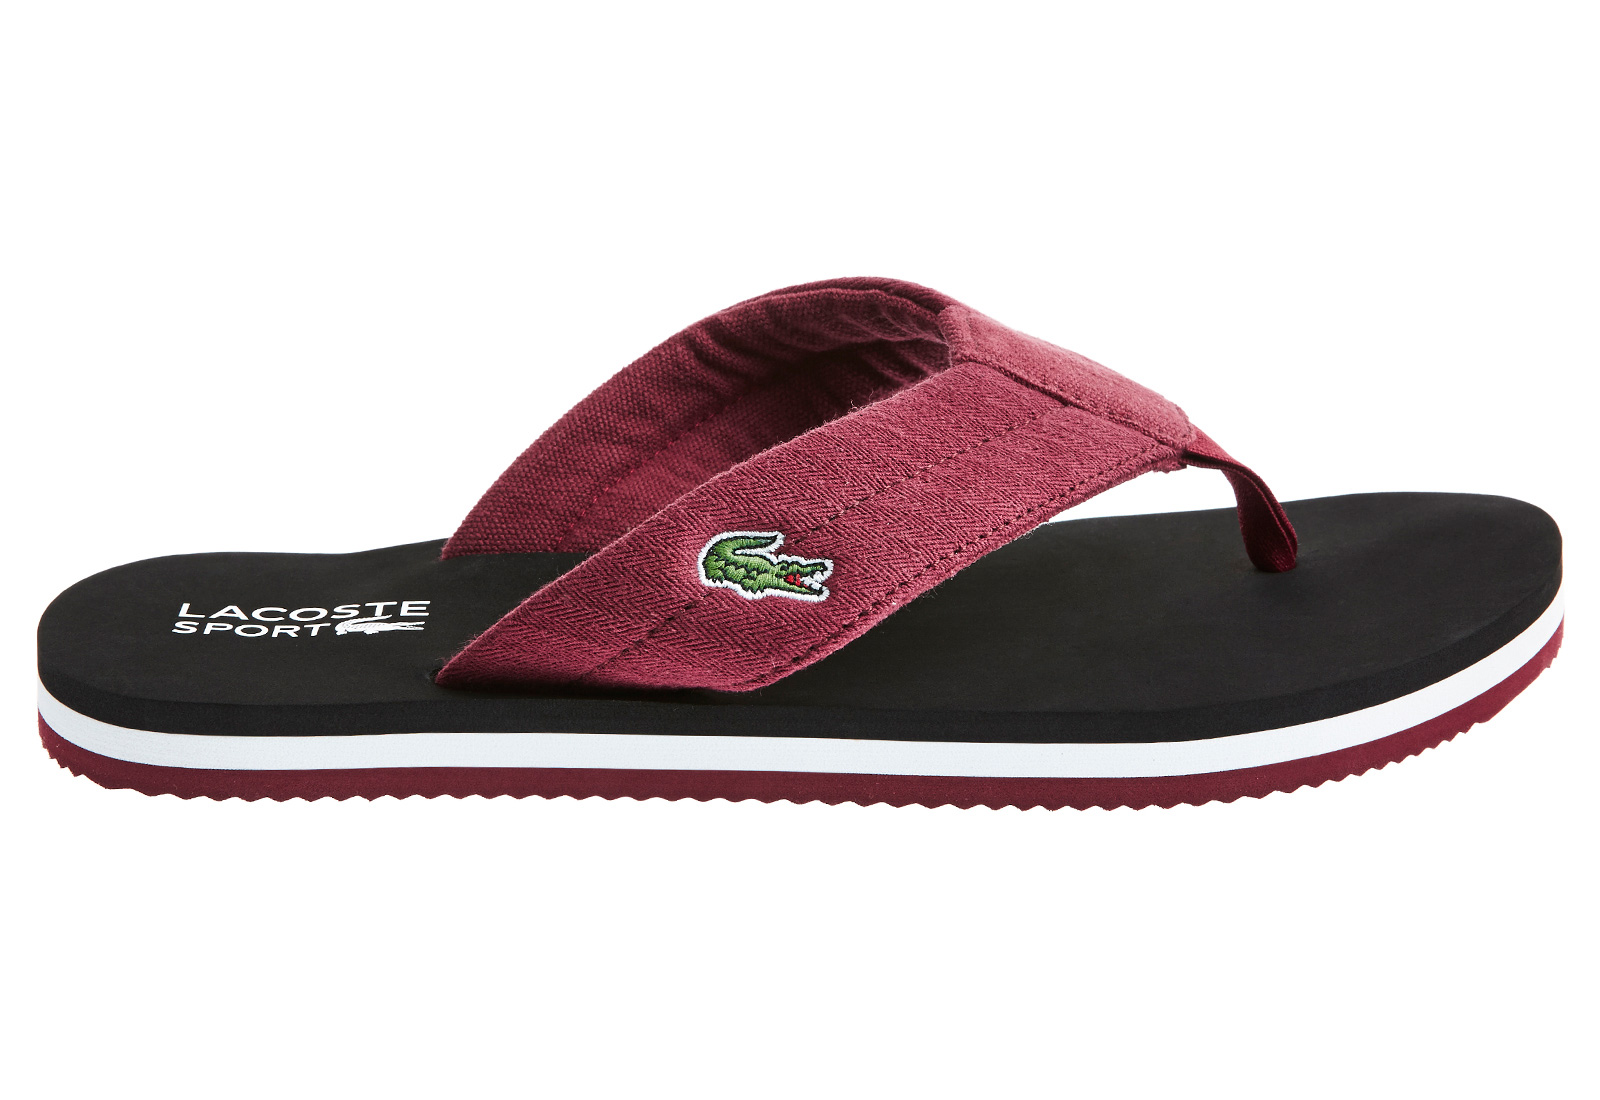 3ed404be9 Lacoste Slippers - Randle Tbr - zx-spm0041dr6 - Online shop for ...